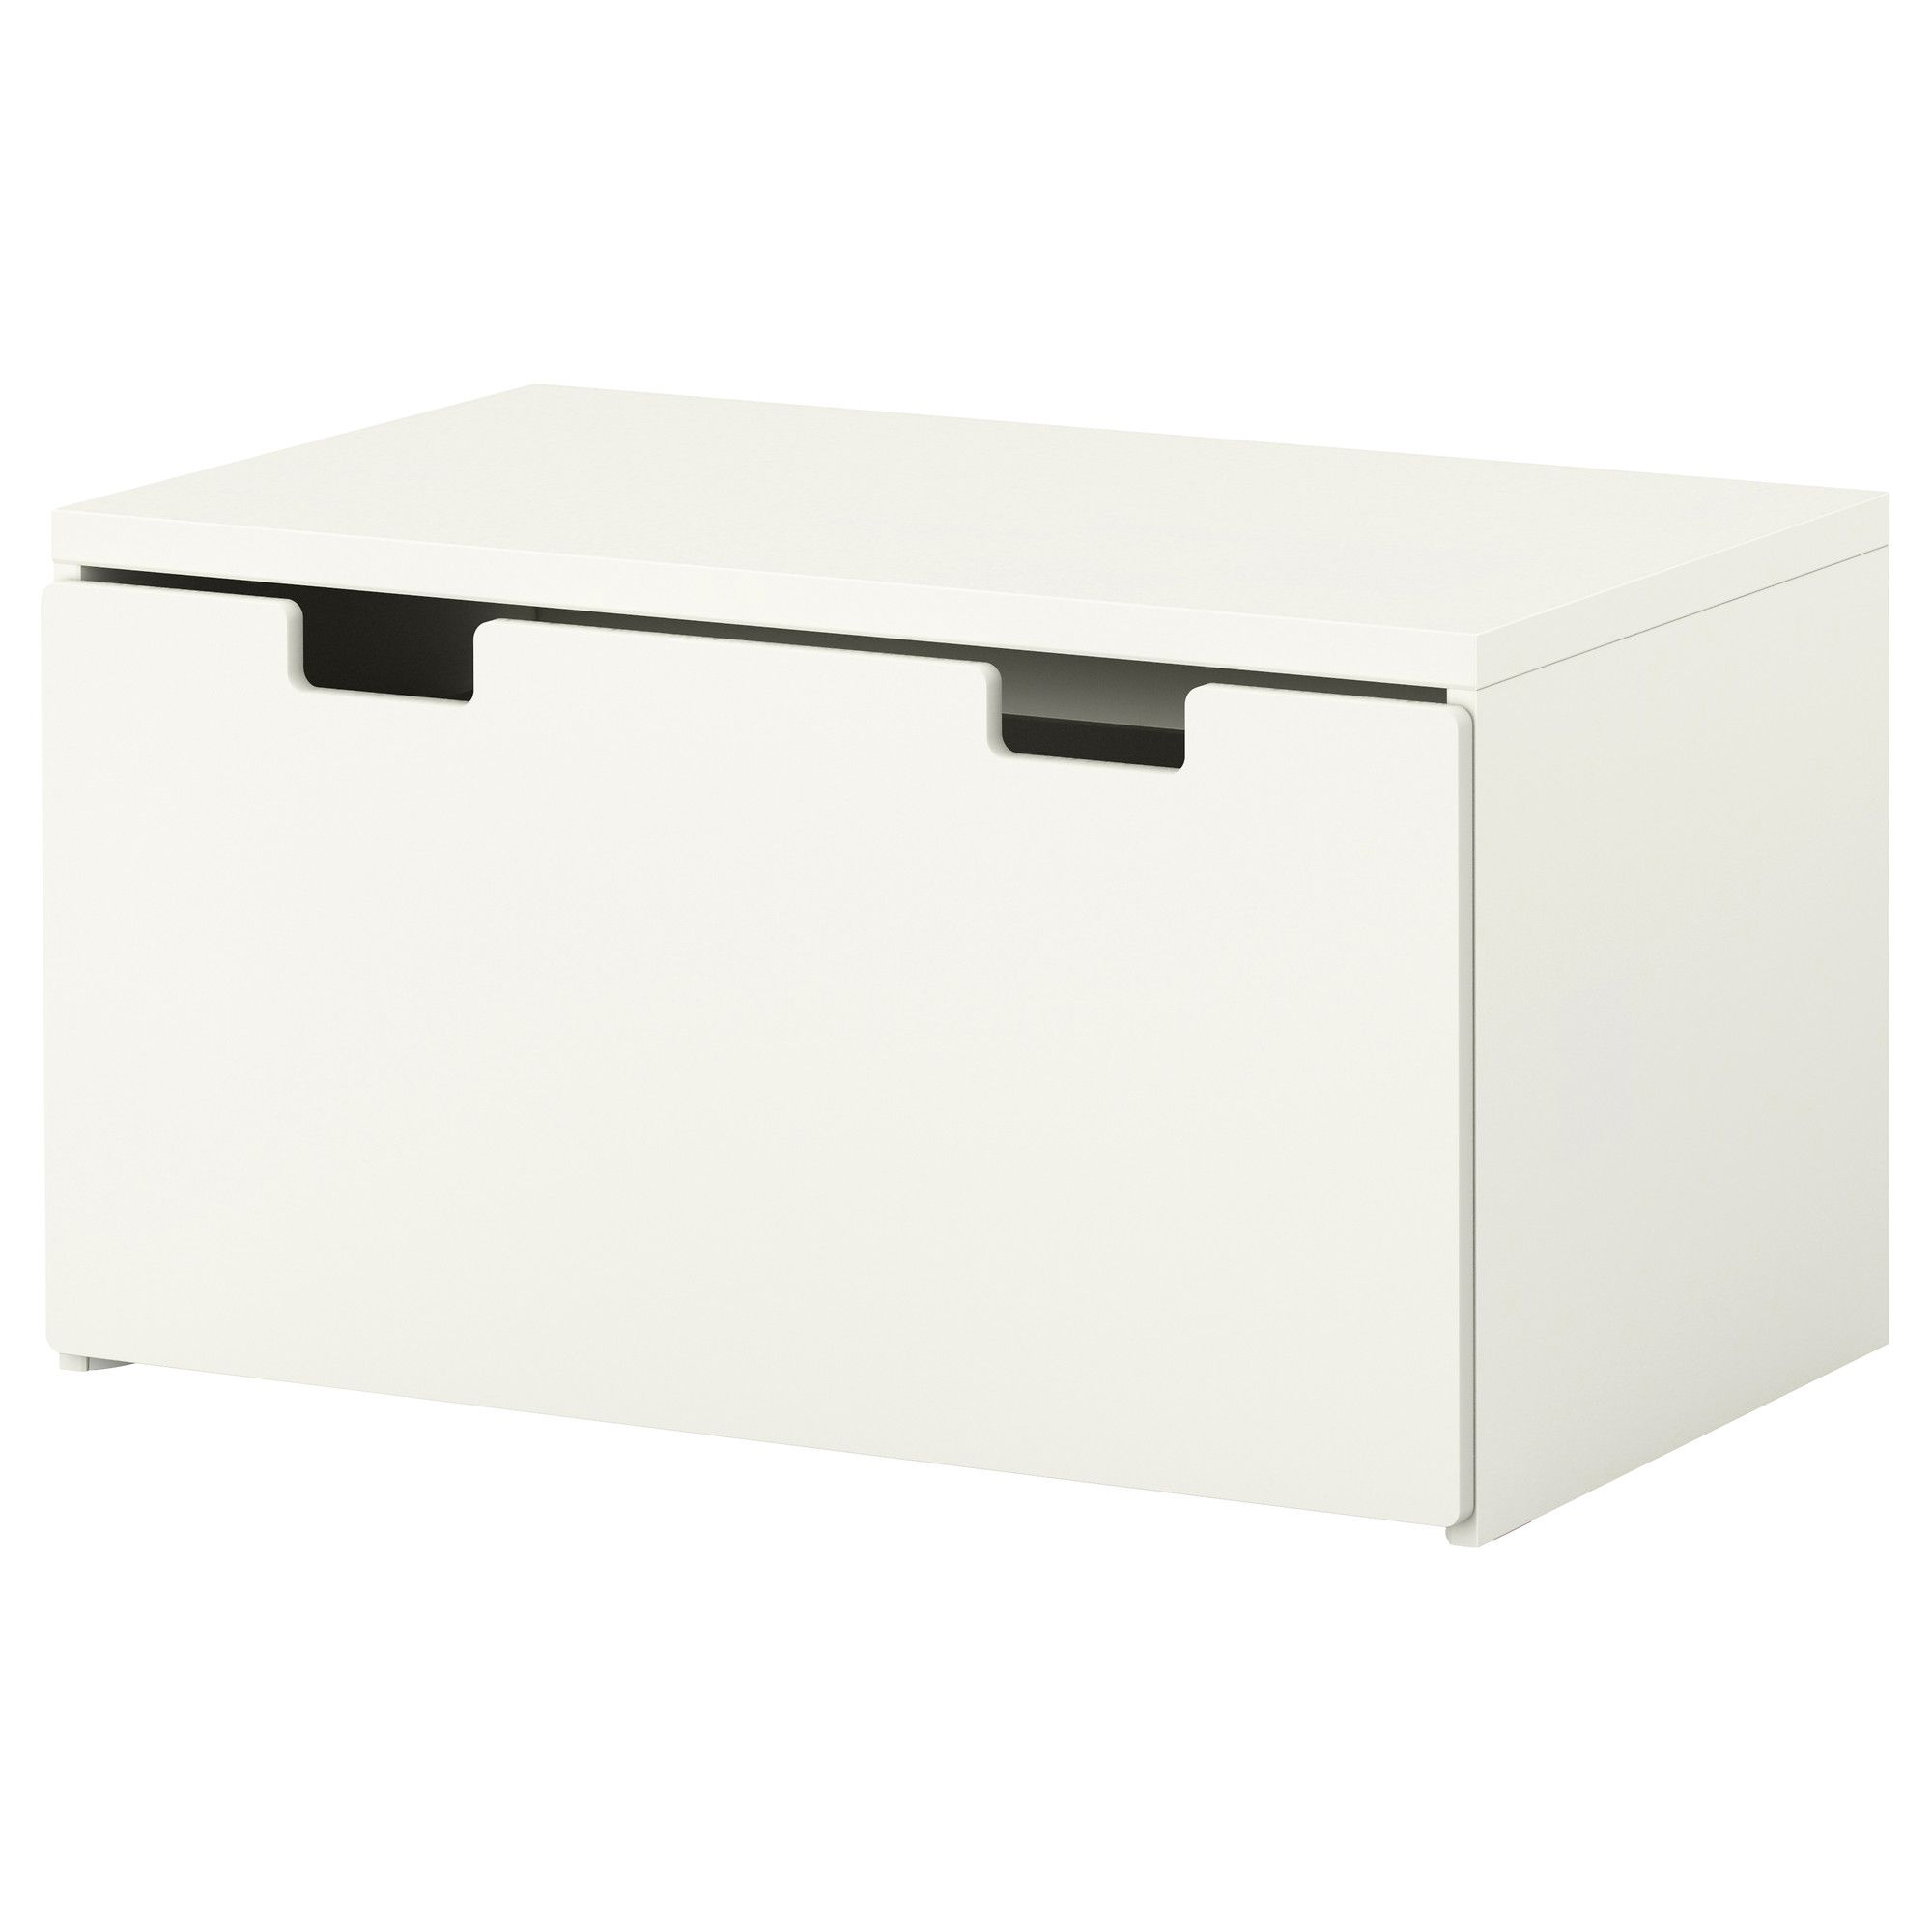 ikea stuva banc avec rangement blanc blanc. Black Bedroom Furniture Sets. Home Design Ideas